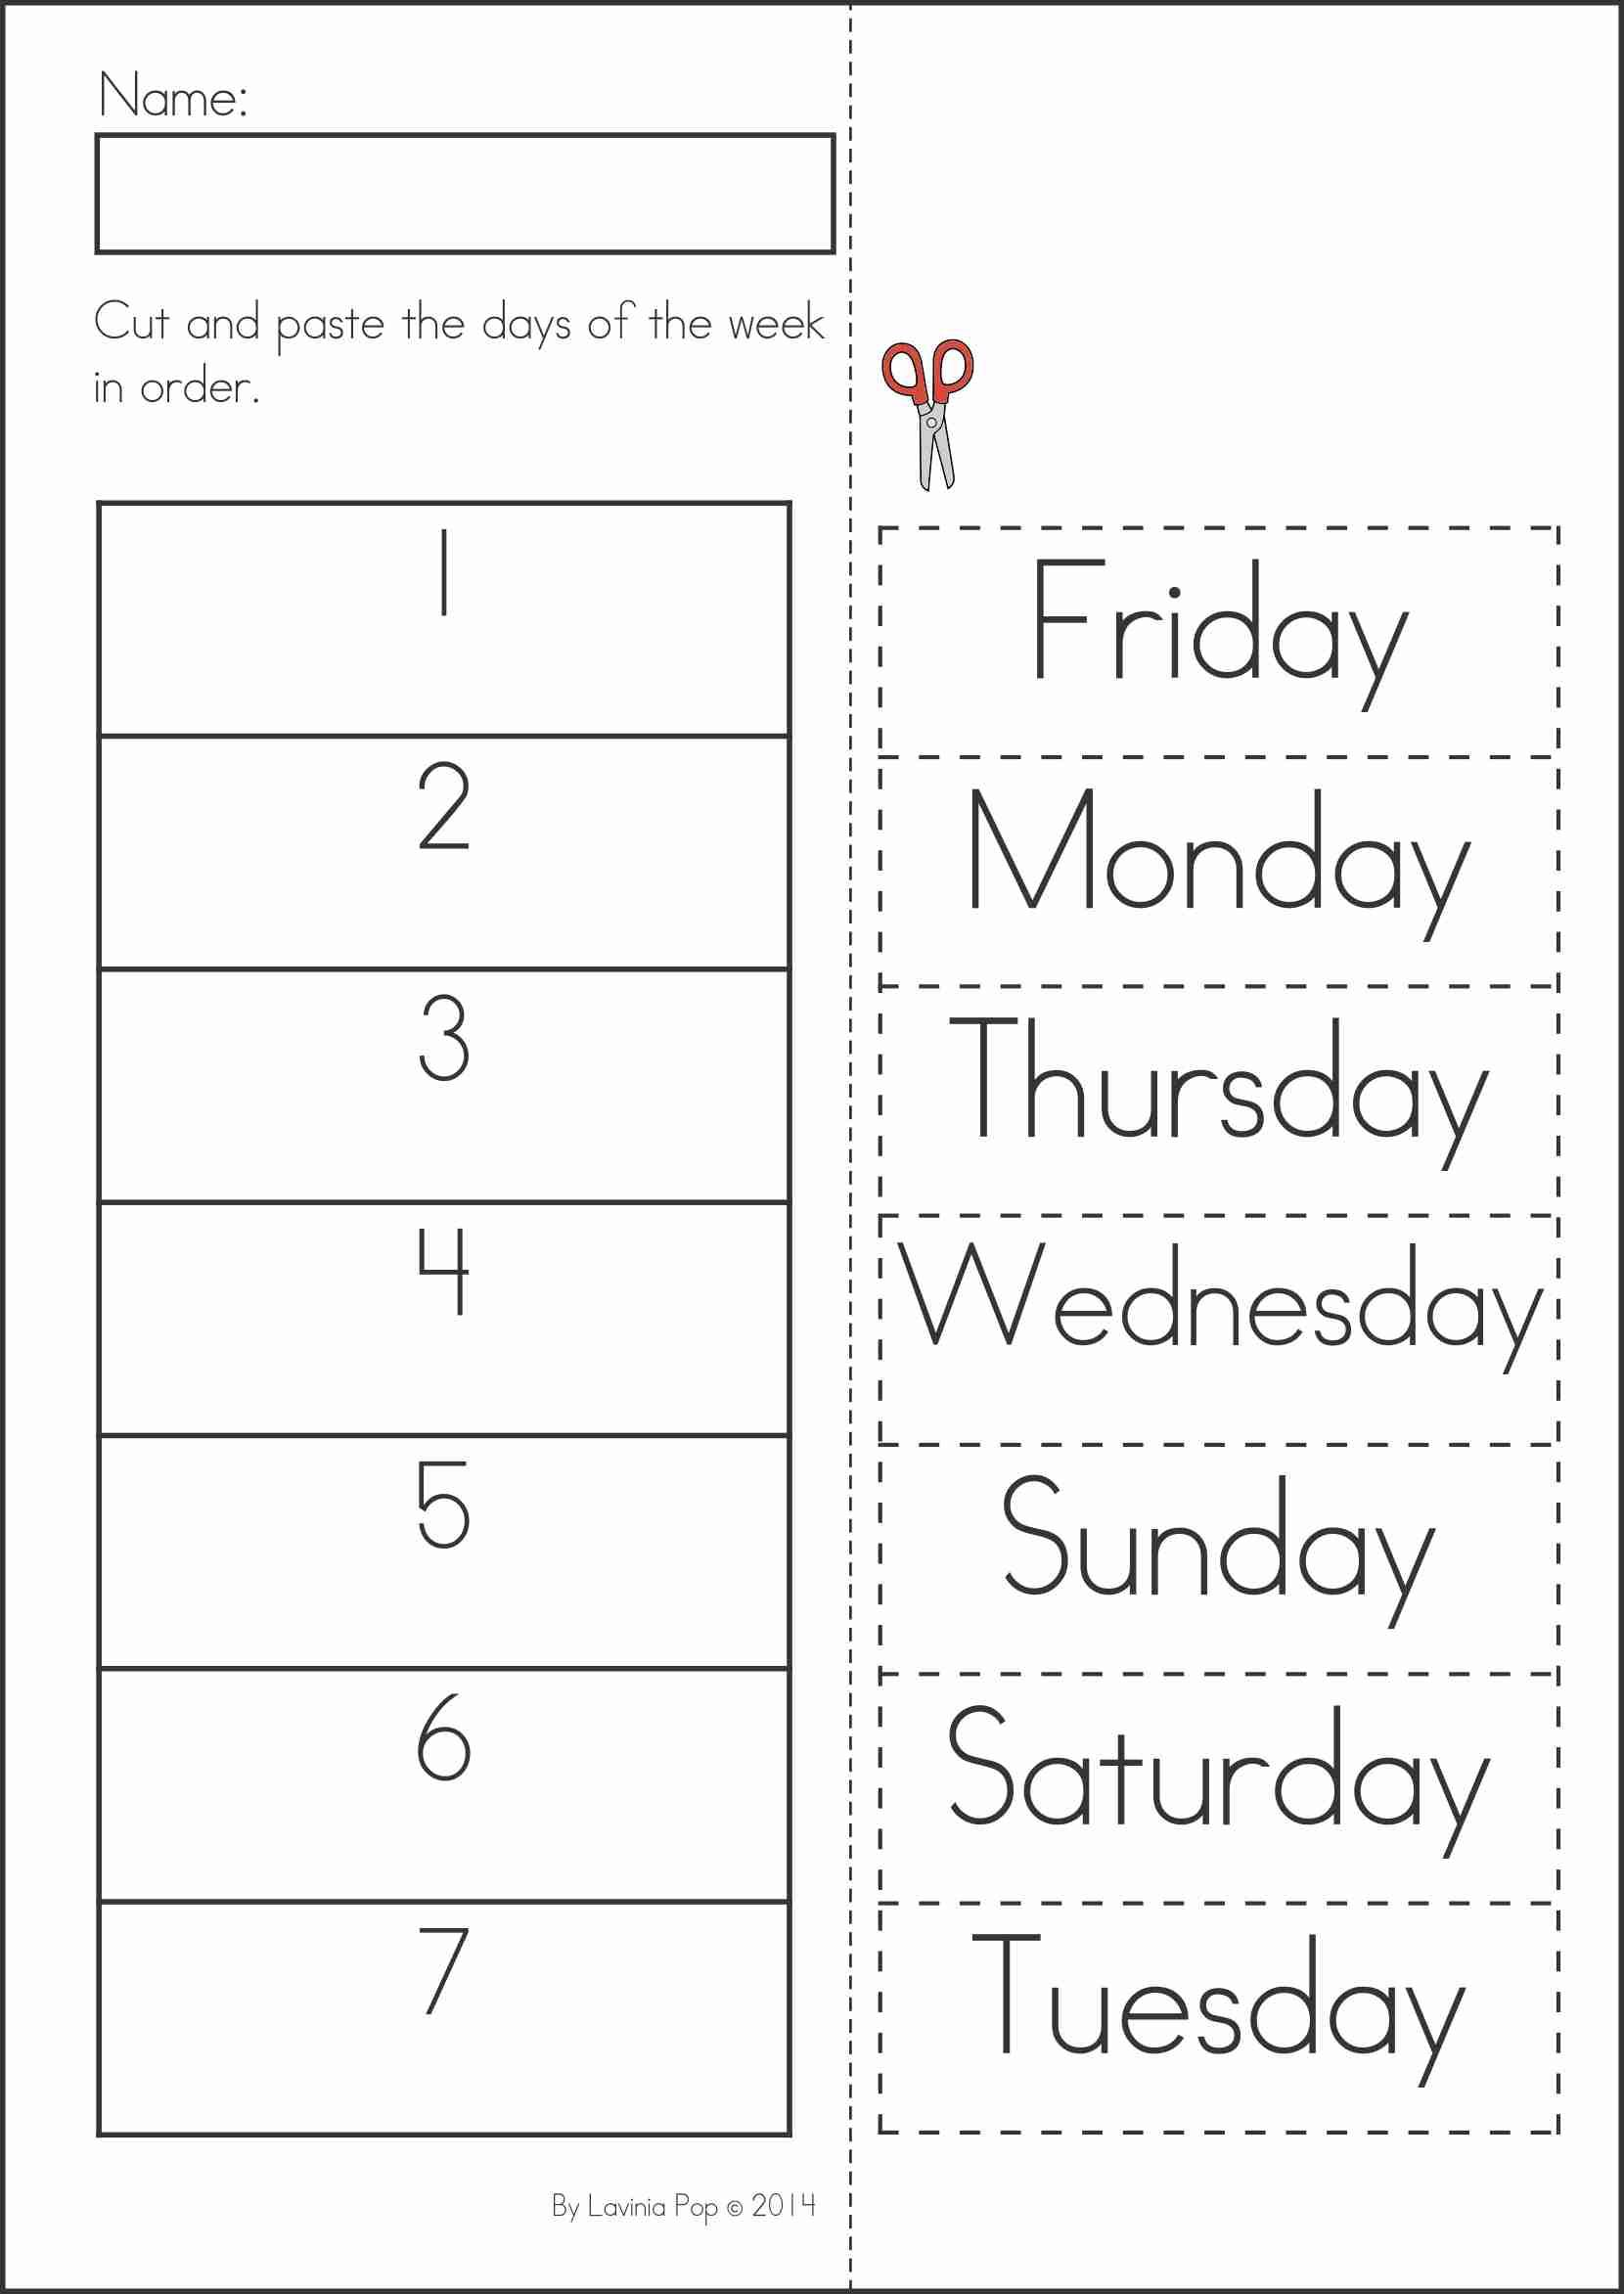 Free Worksheet Cut And Paste Sentence Worksheets 17 best images about cut and paste activities on pinterest problem solving literacy preschool